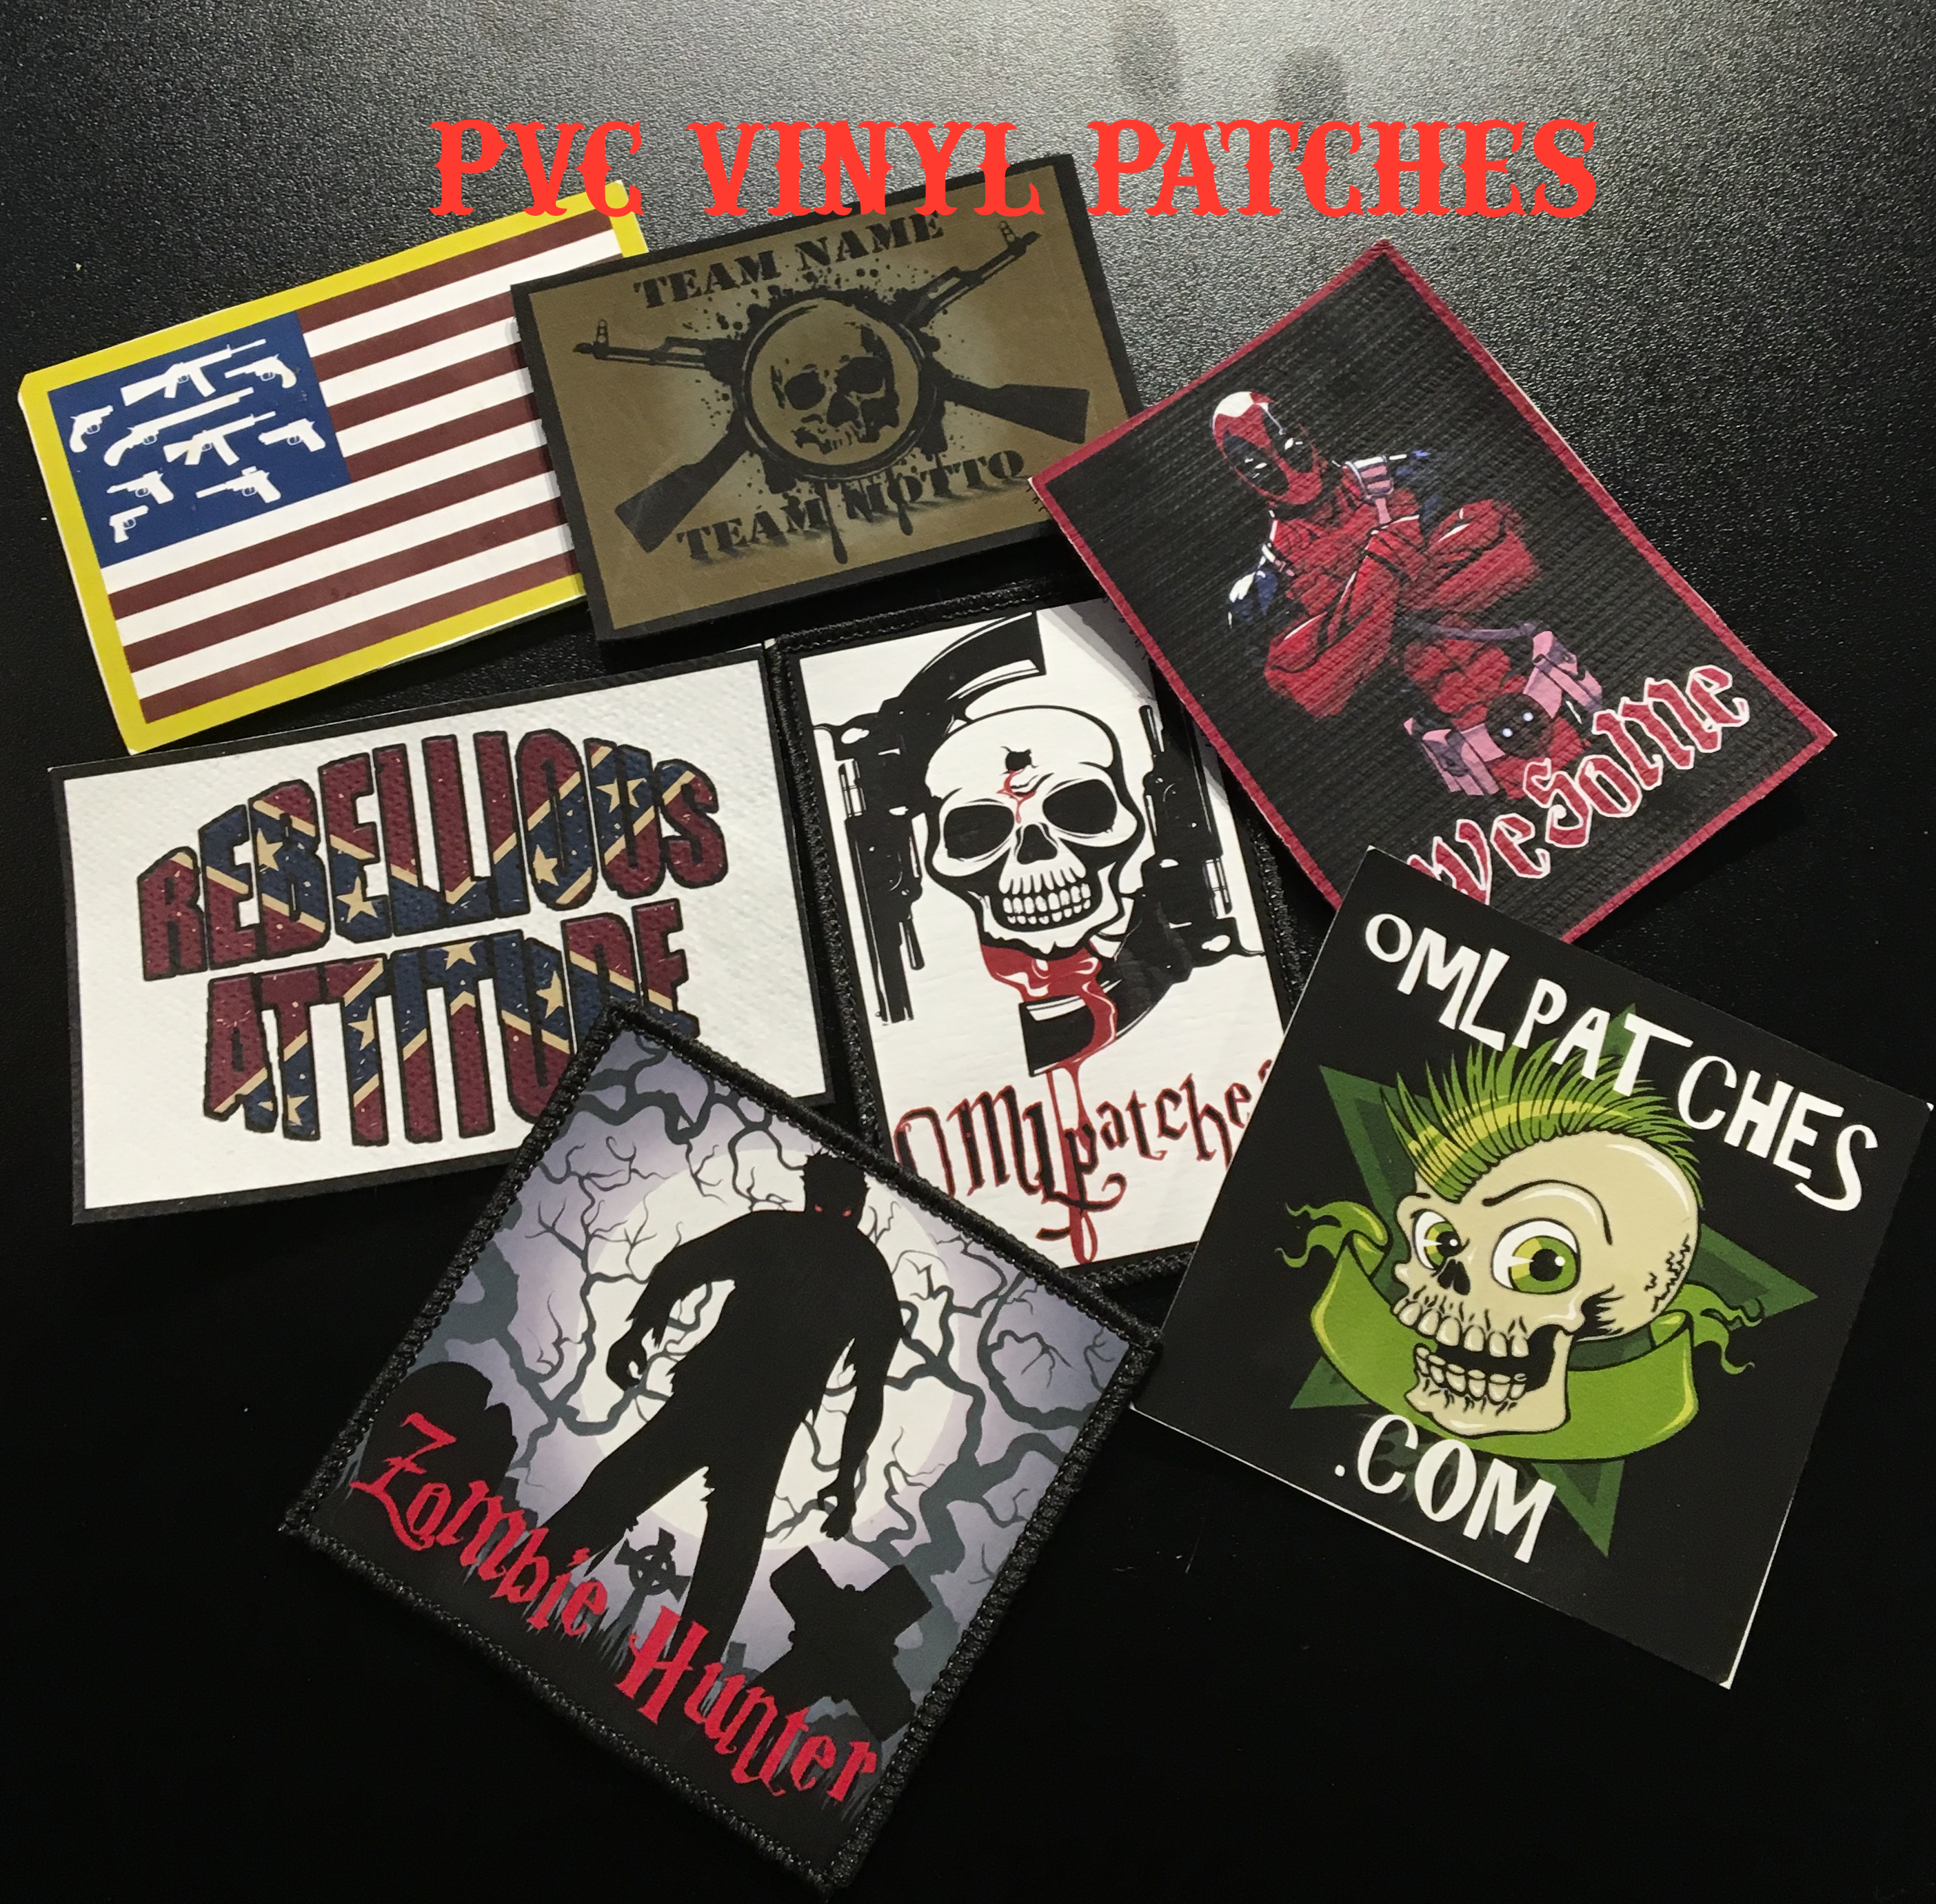 Design your own t-shirt label - Guidelines To Designing Your Own Pvc Vinyl Patch Pvc Vinyl Patches Create Your Own Custom Patch